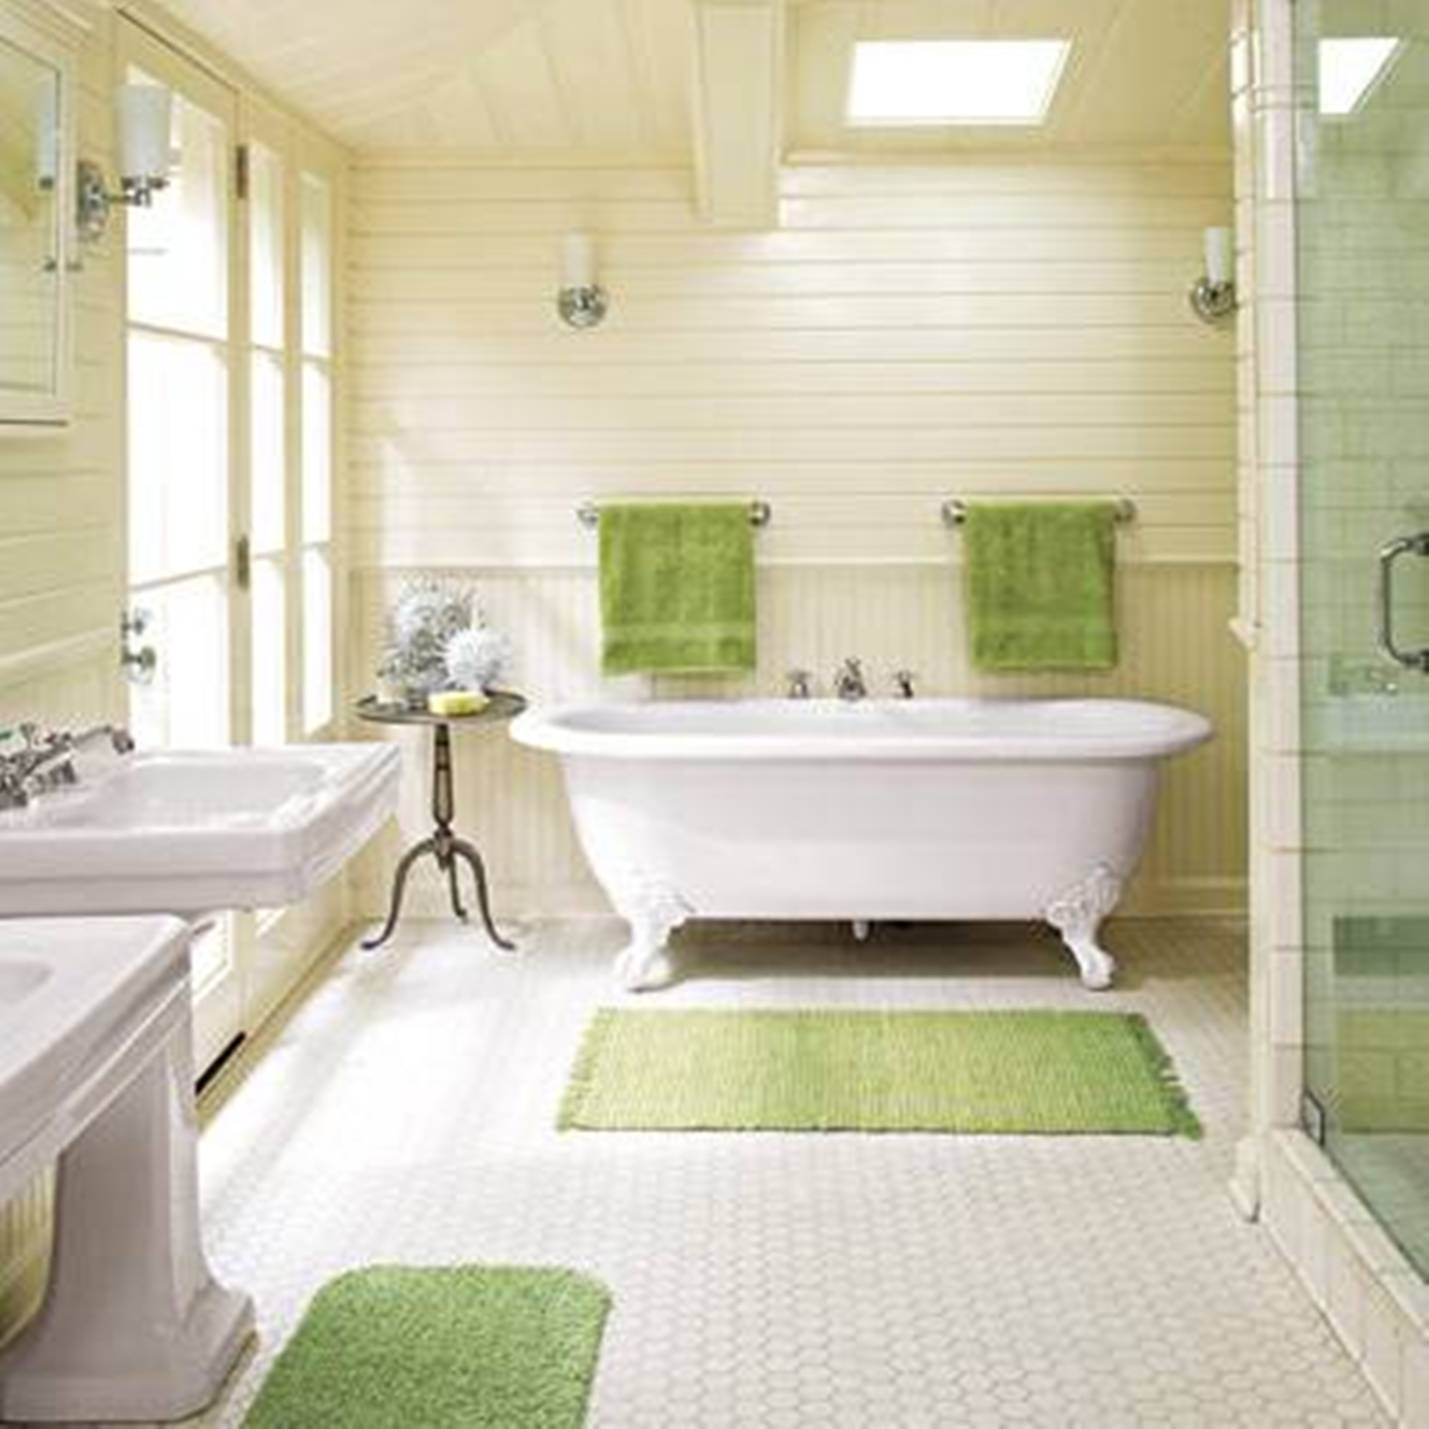 Bathroom White Clawfoot Tub On White Floor Plus Green Rugs And - White bath runner for bathroom decorating ideas